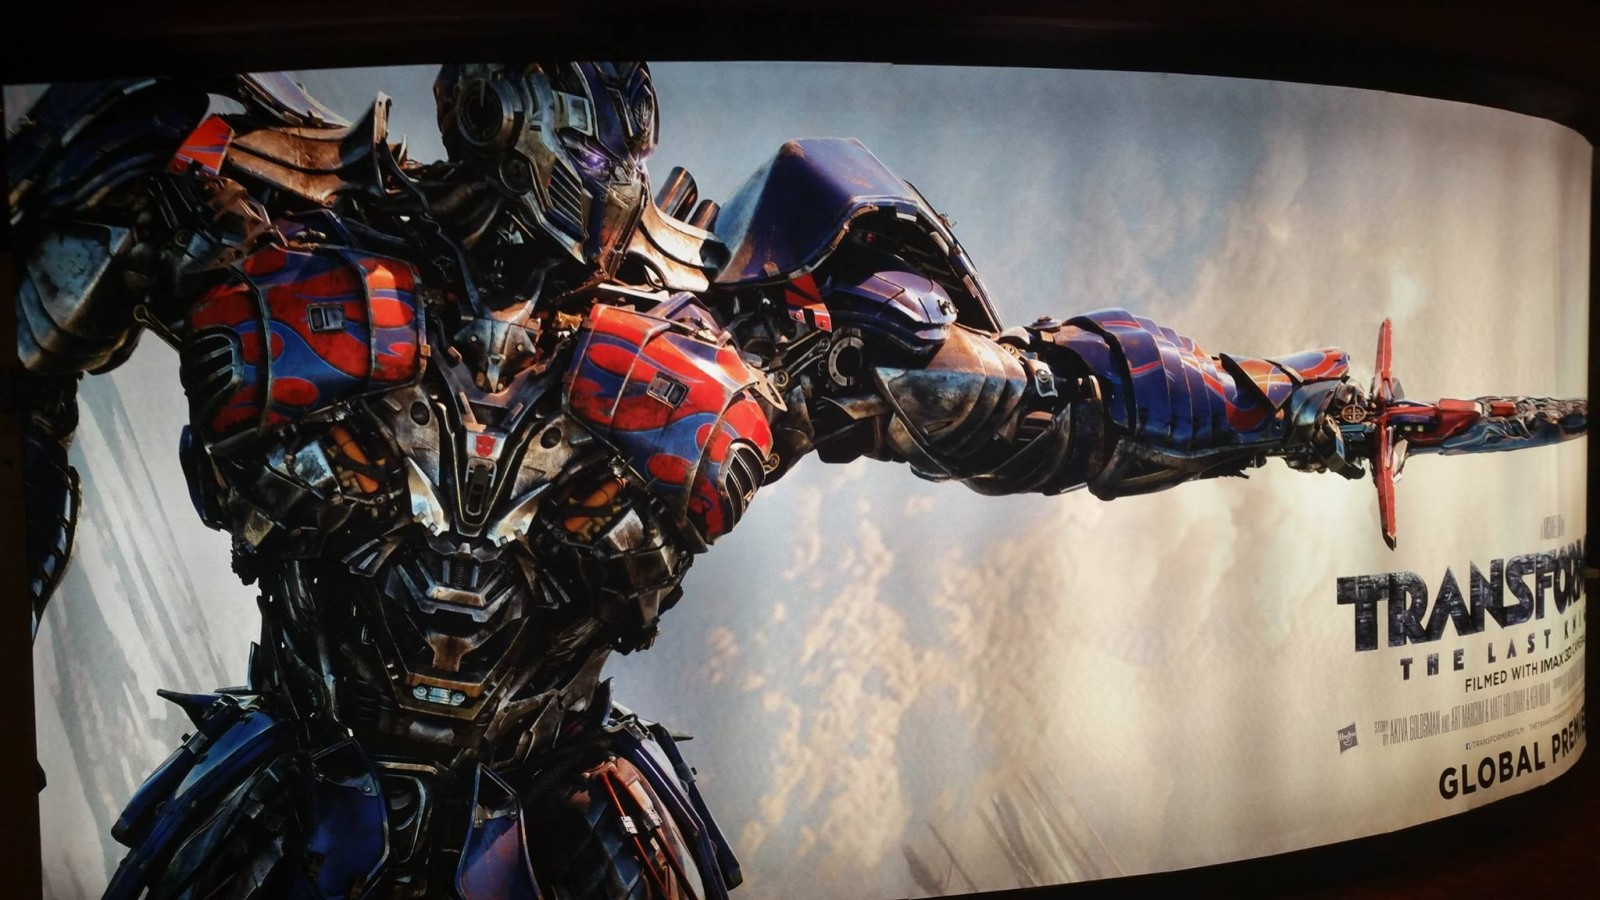 Full Review Of Transformers The Last Knight With Spoilers